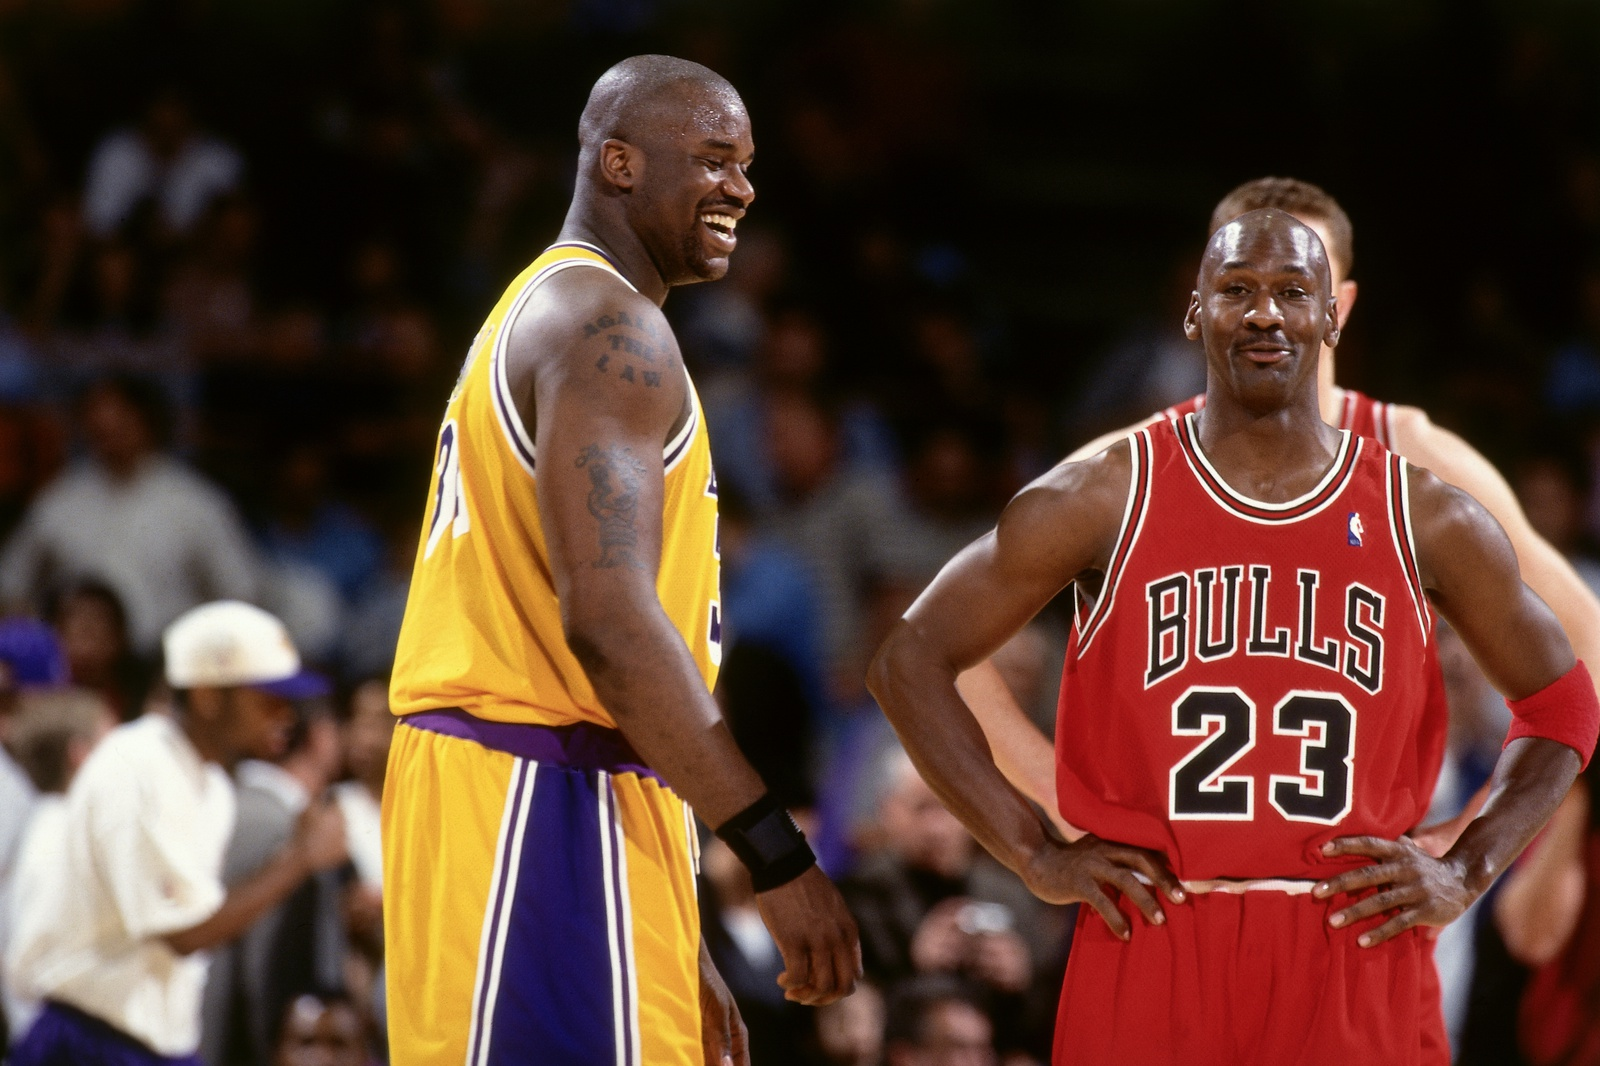 Shaquille O'Neal #34 of the Los Angeles Lakers jokes with Michael Jordan #23 of the Chicago Bulls on February 1, 1998 at The Forum in Inglewood, California.